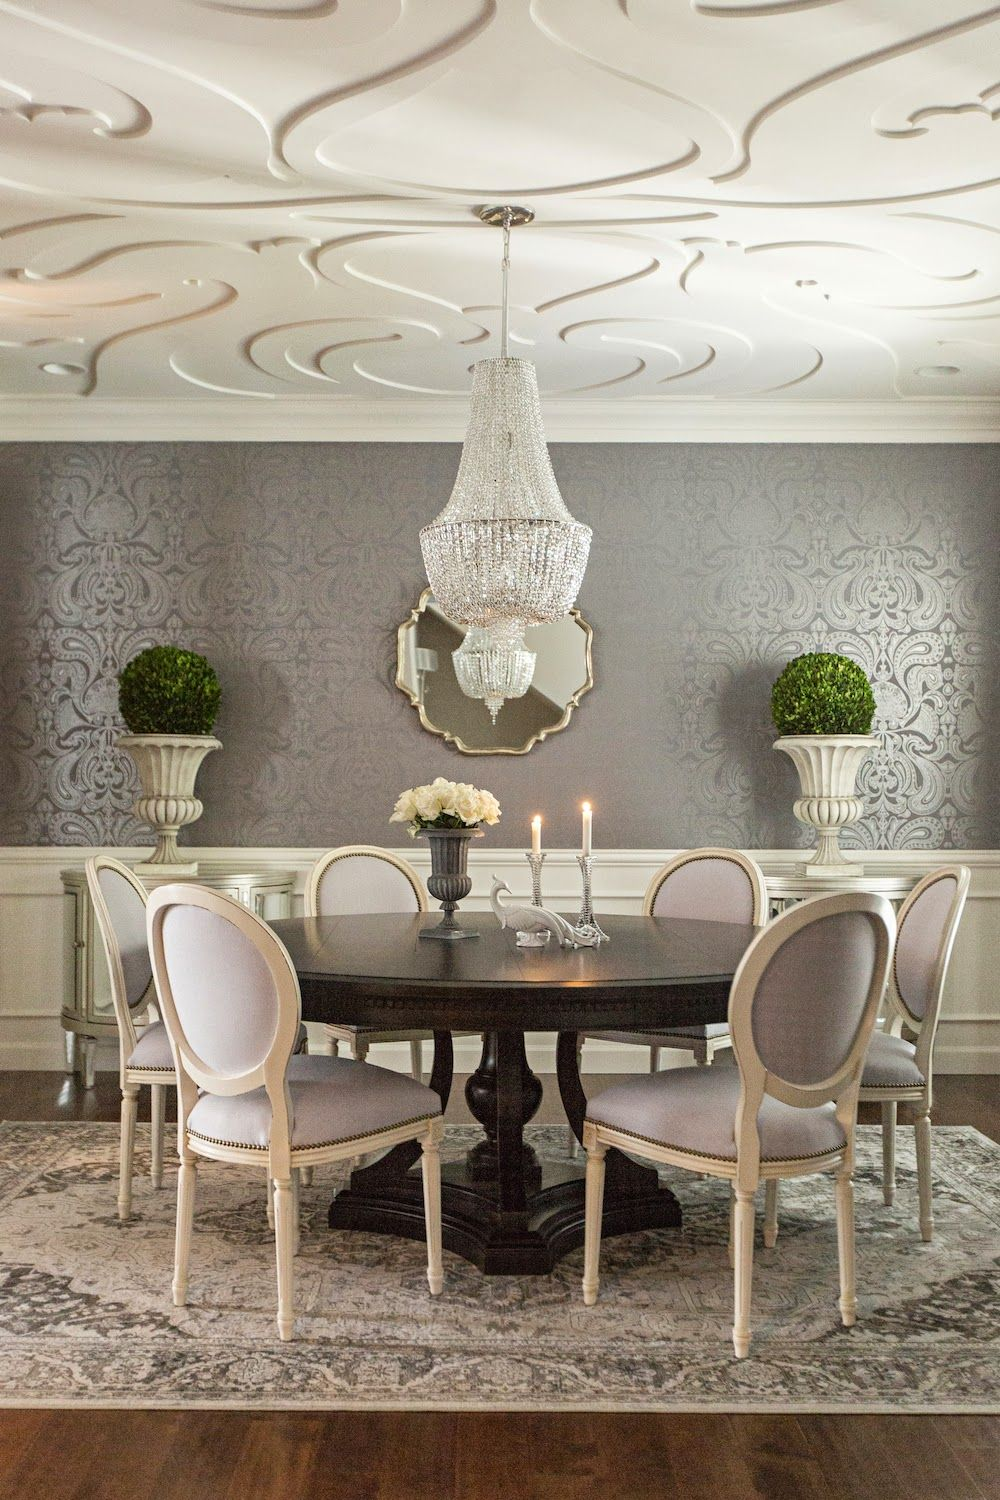 Ceiling WOW (powell brower at home) Dining room